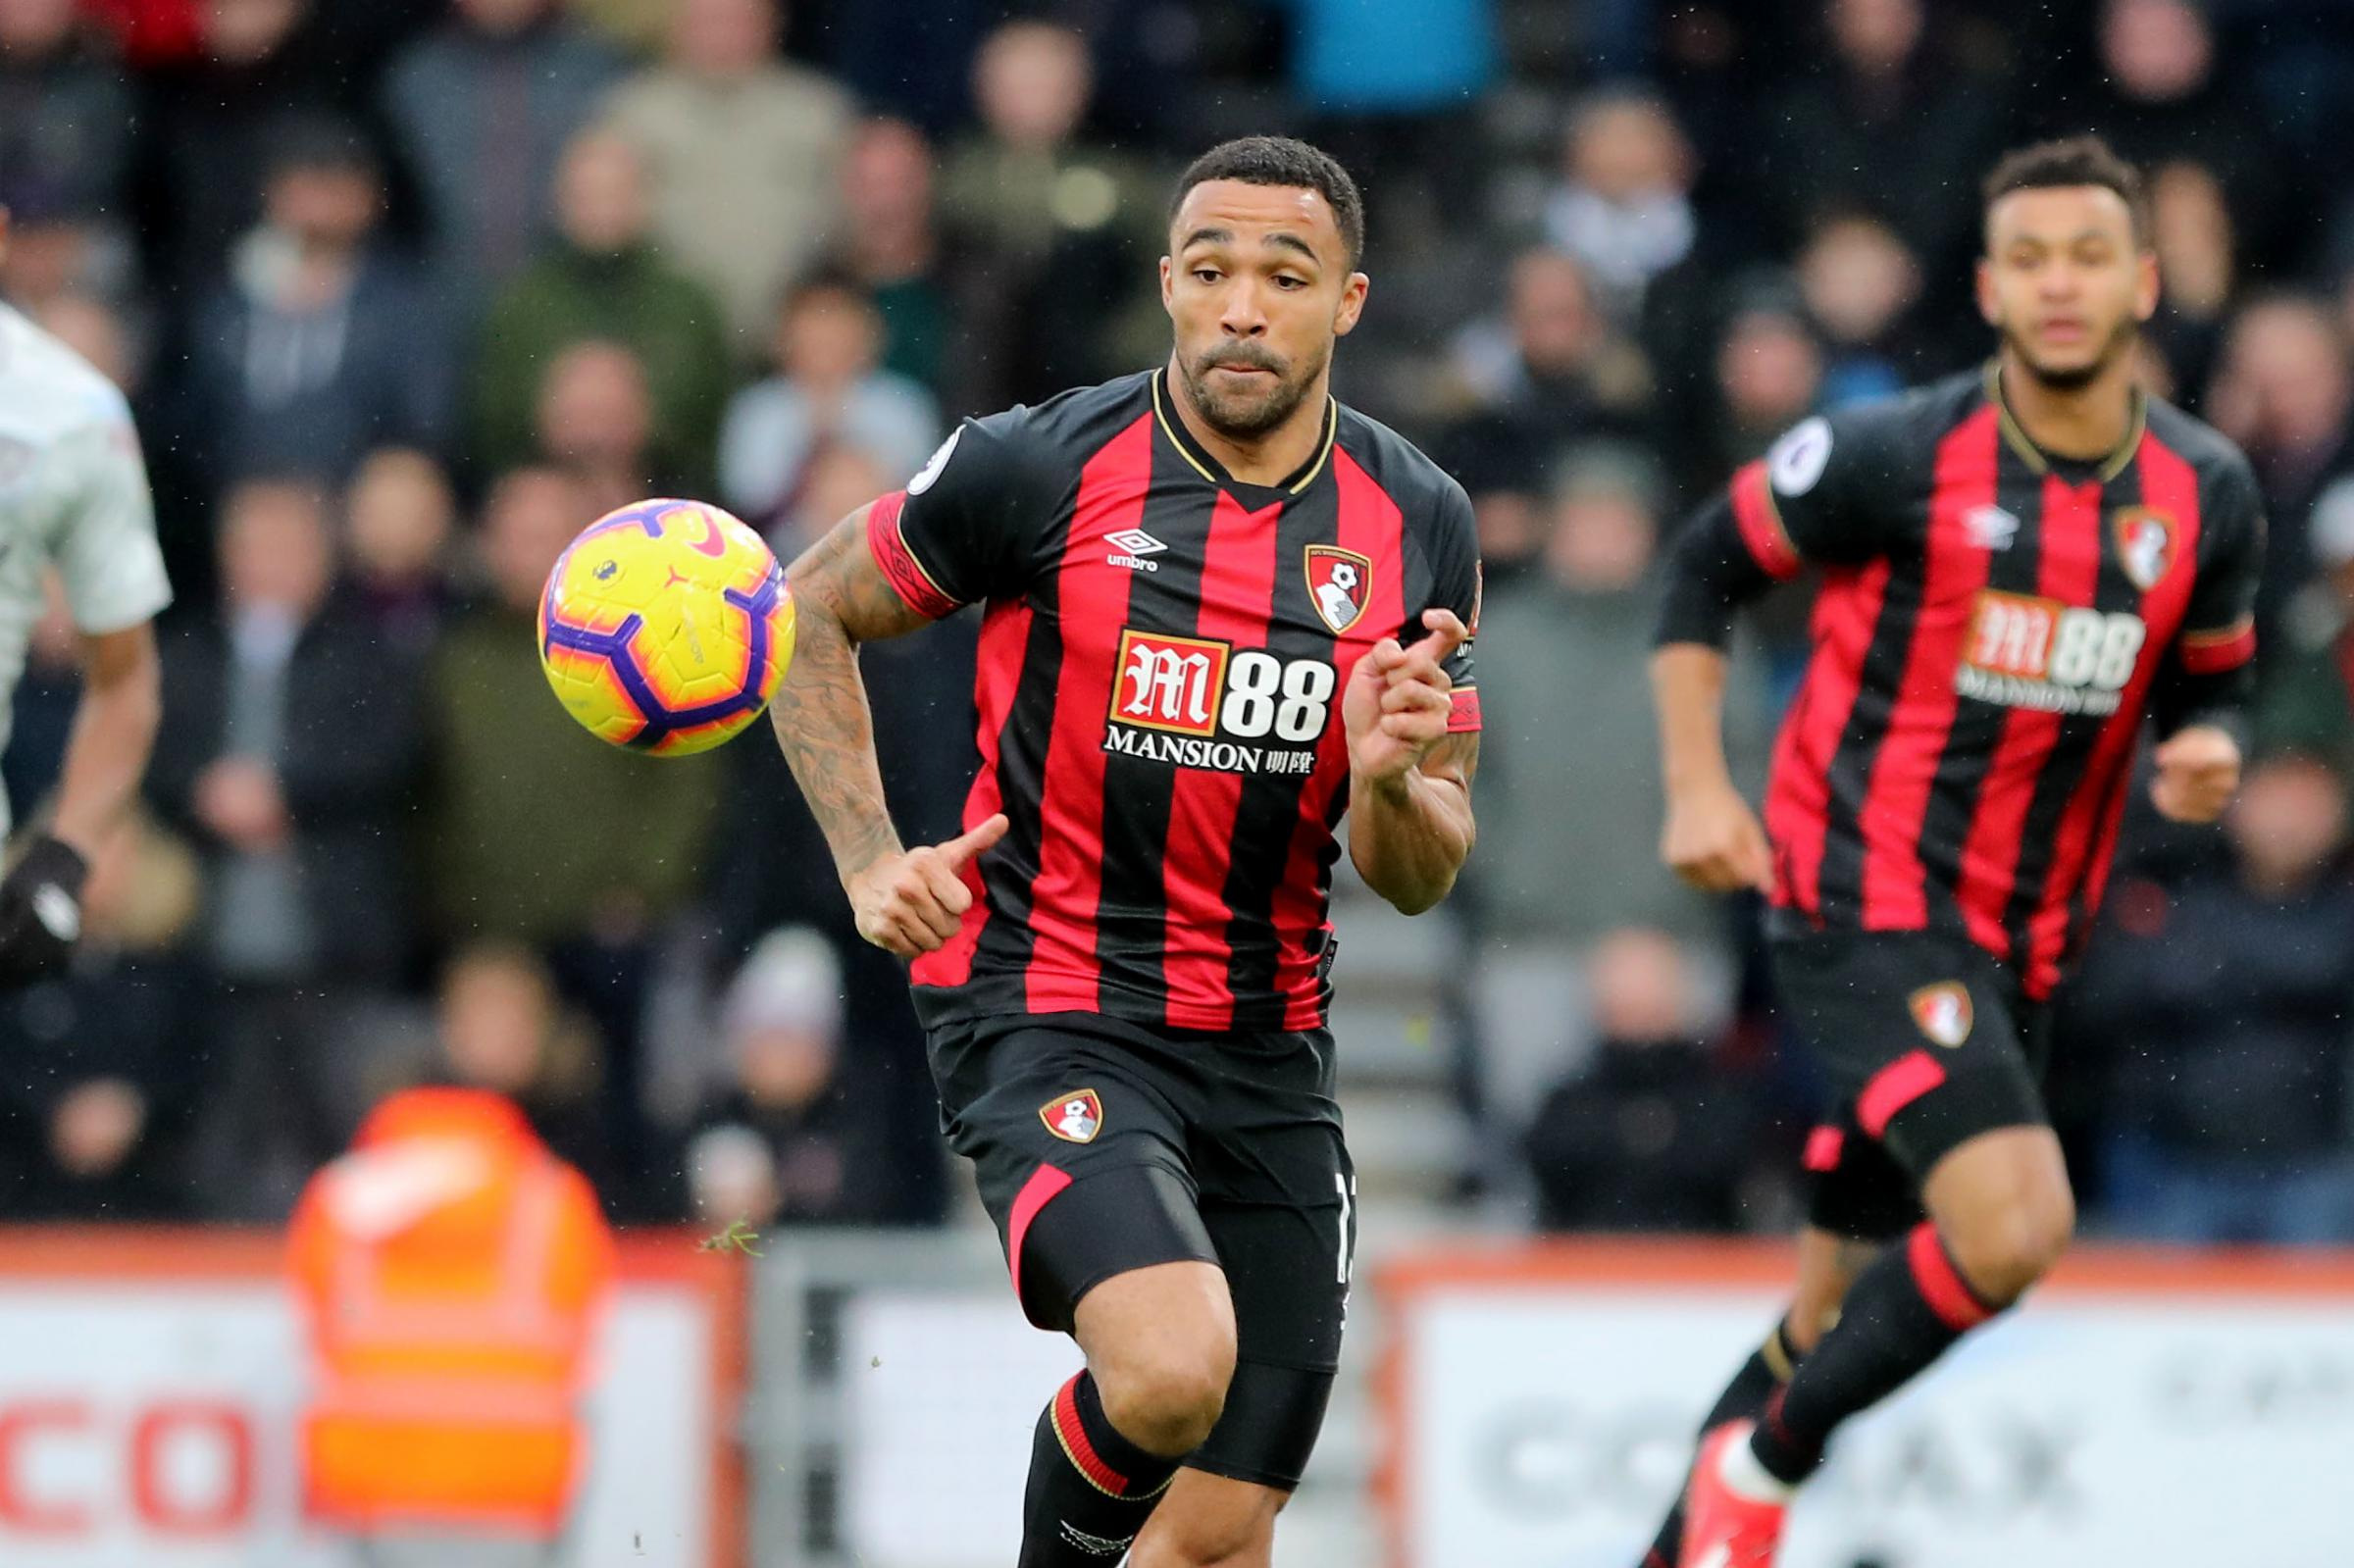 'AFC Bournemouth will keep growing' - Callum Wilson discusses his five years at the club after penning new deal